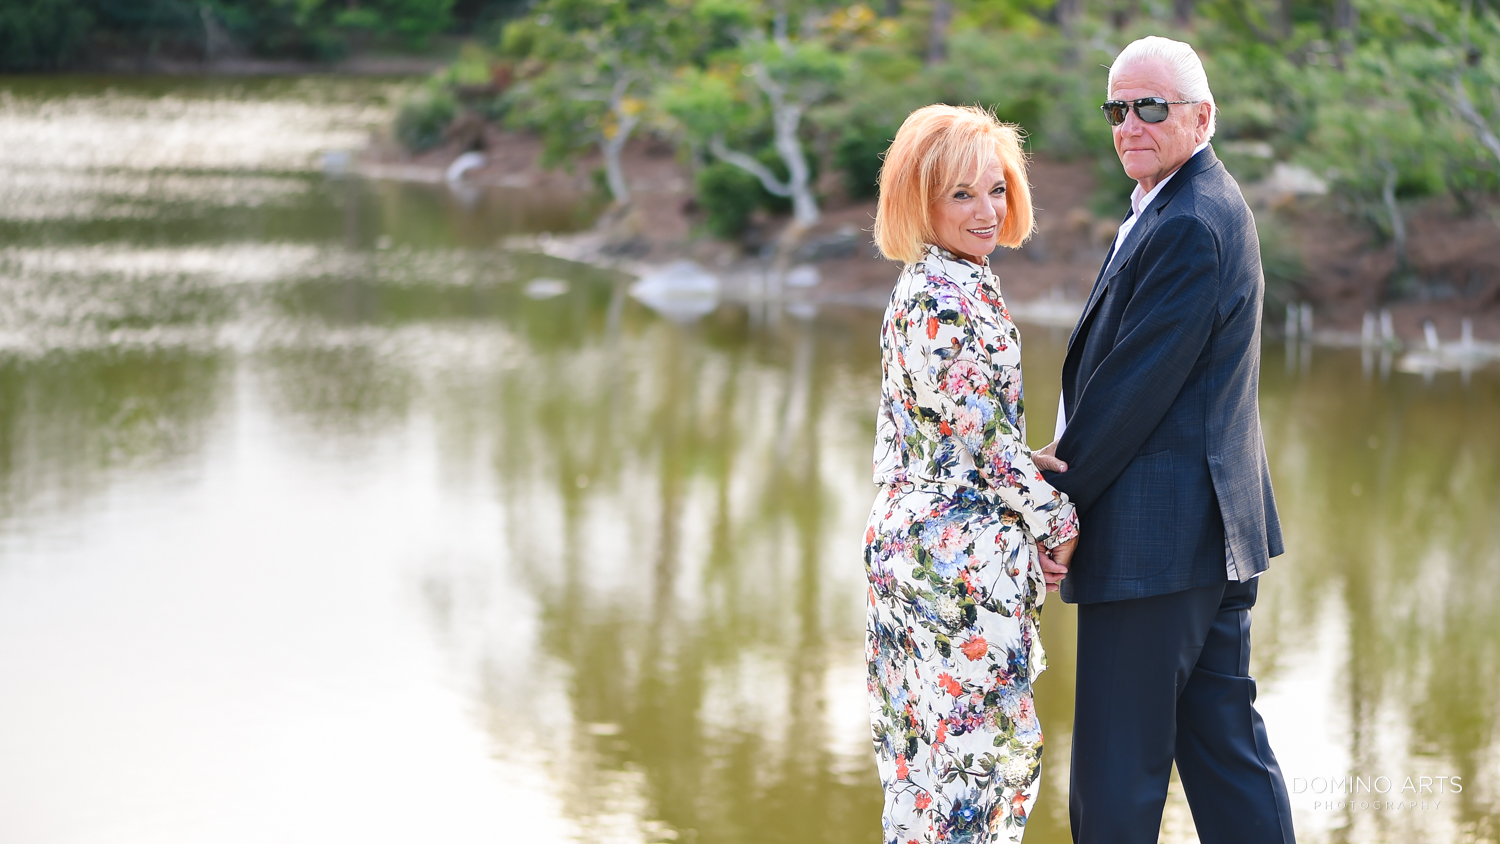 A couple celebrating 70th Birthday at Morikami Museum and Japanese Gardens